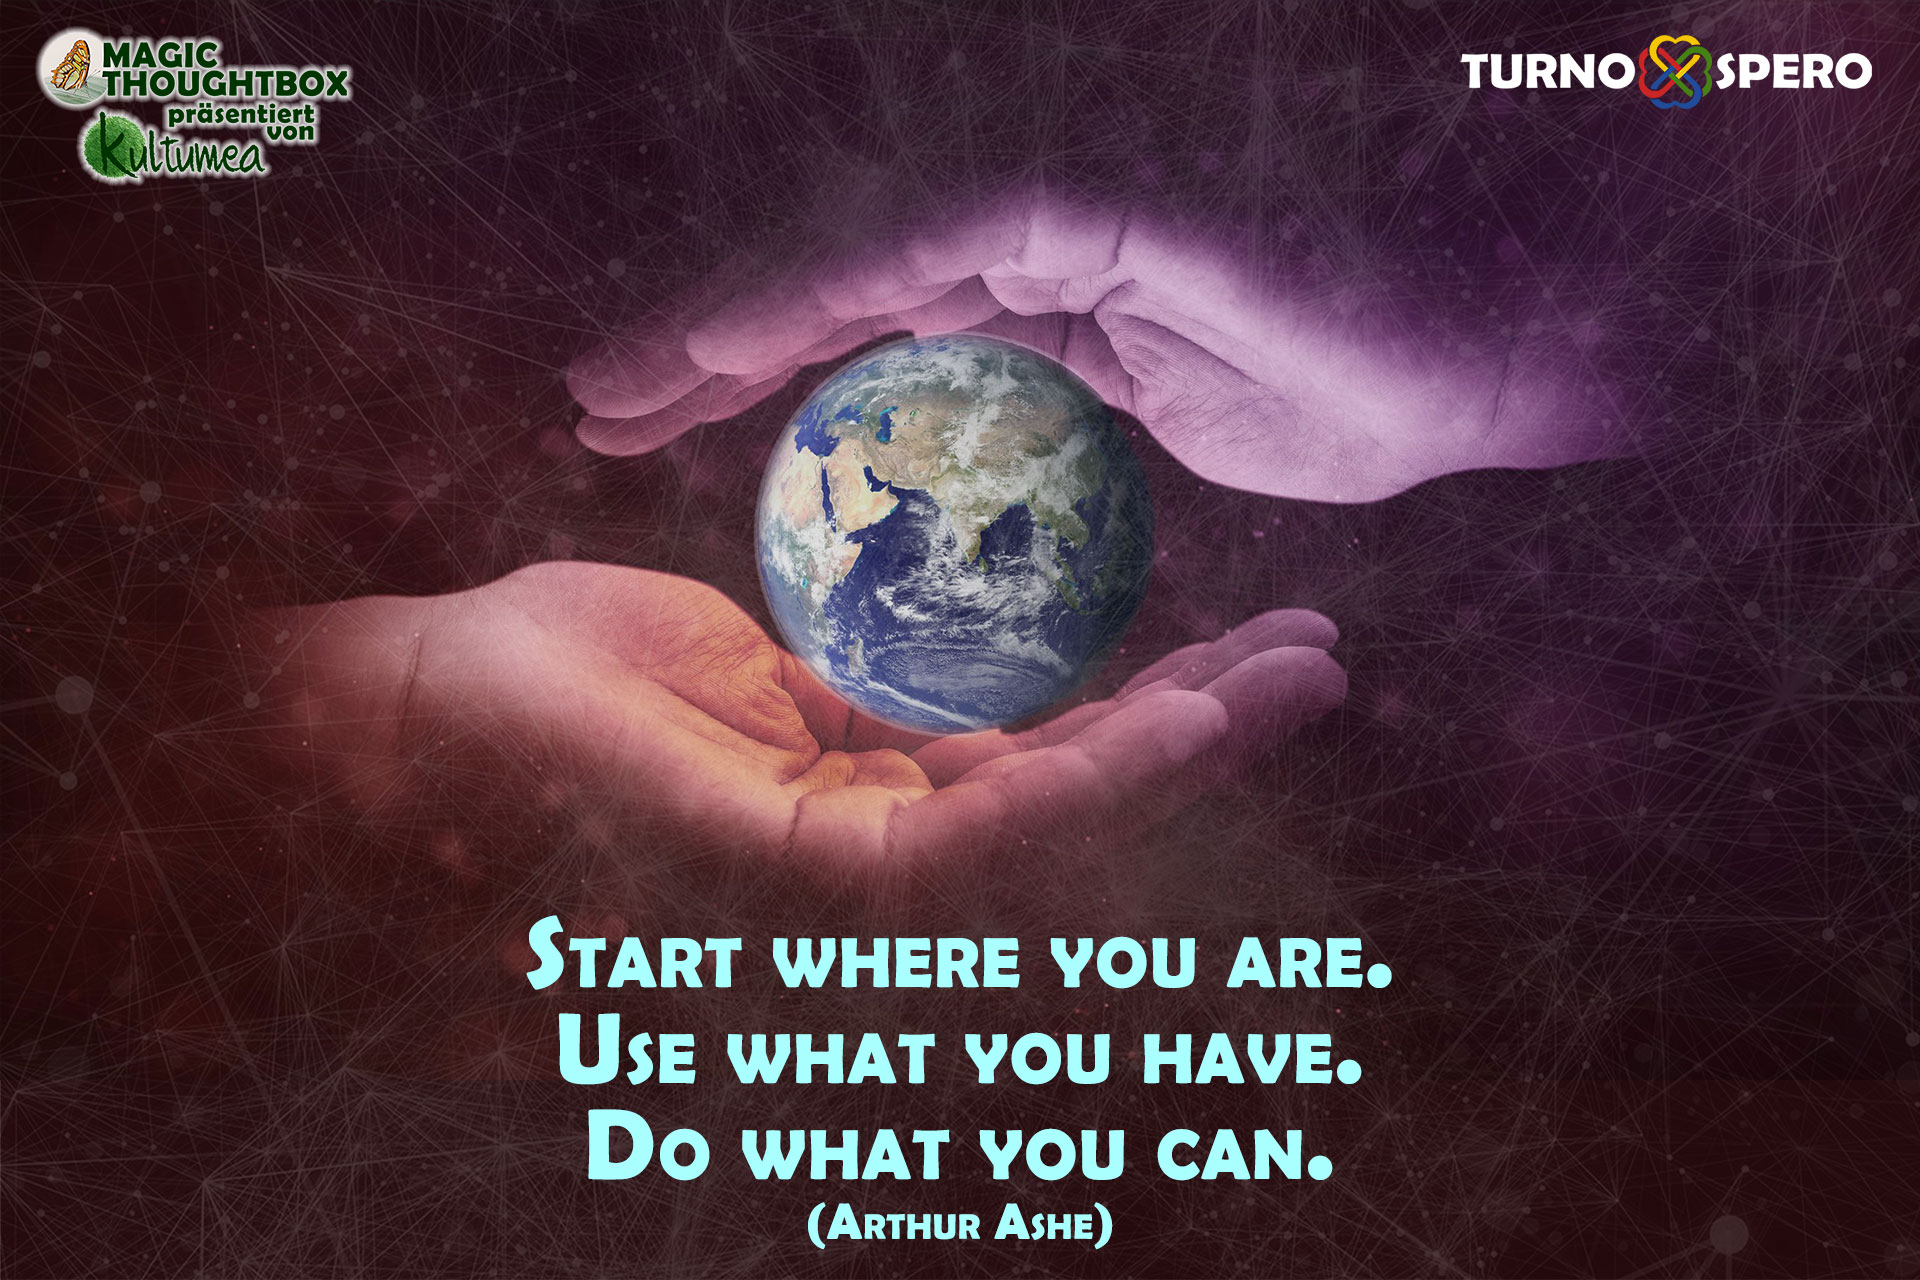 Start where you are. Use what you have. Do what you can. (Arthur Ashe)